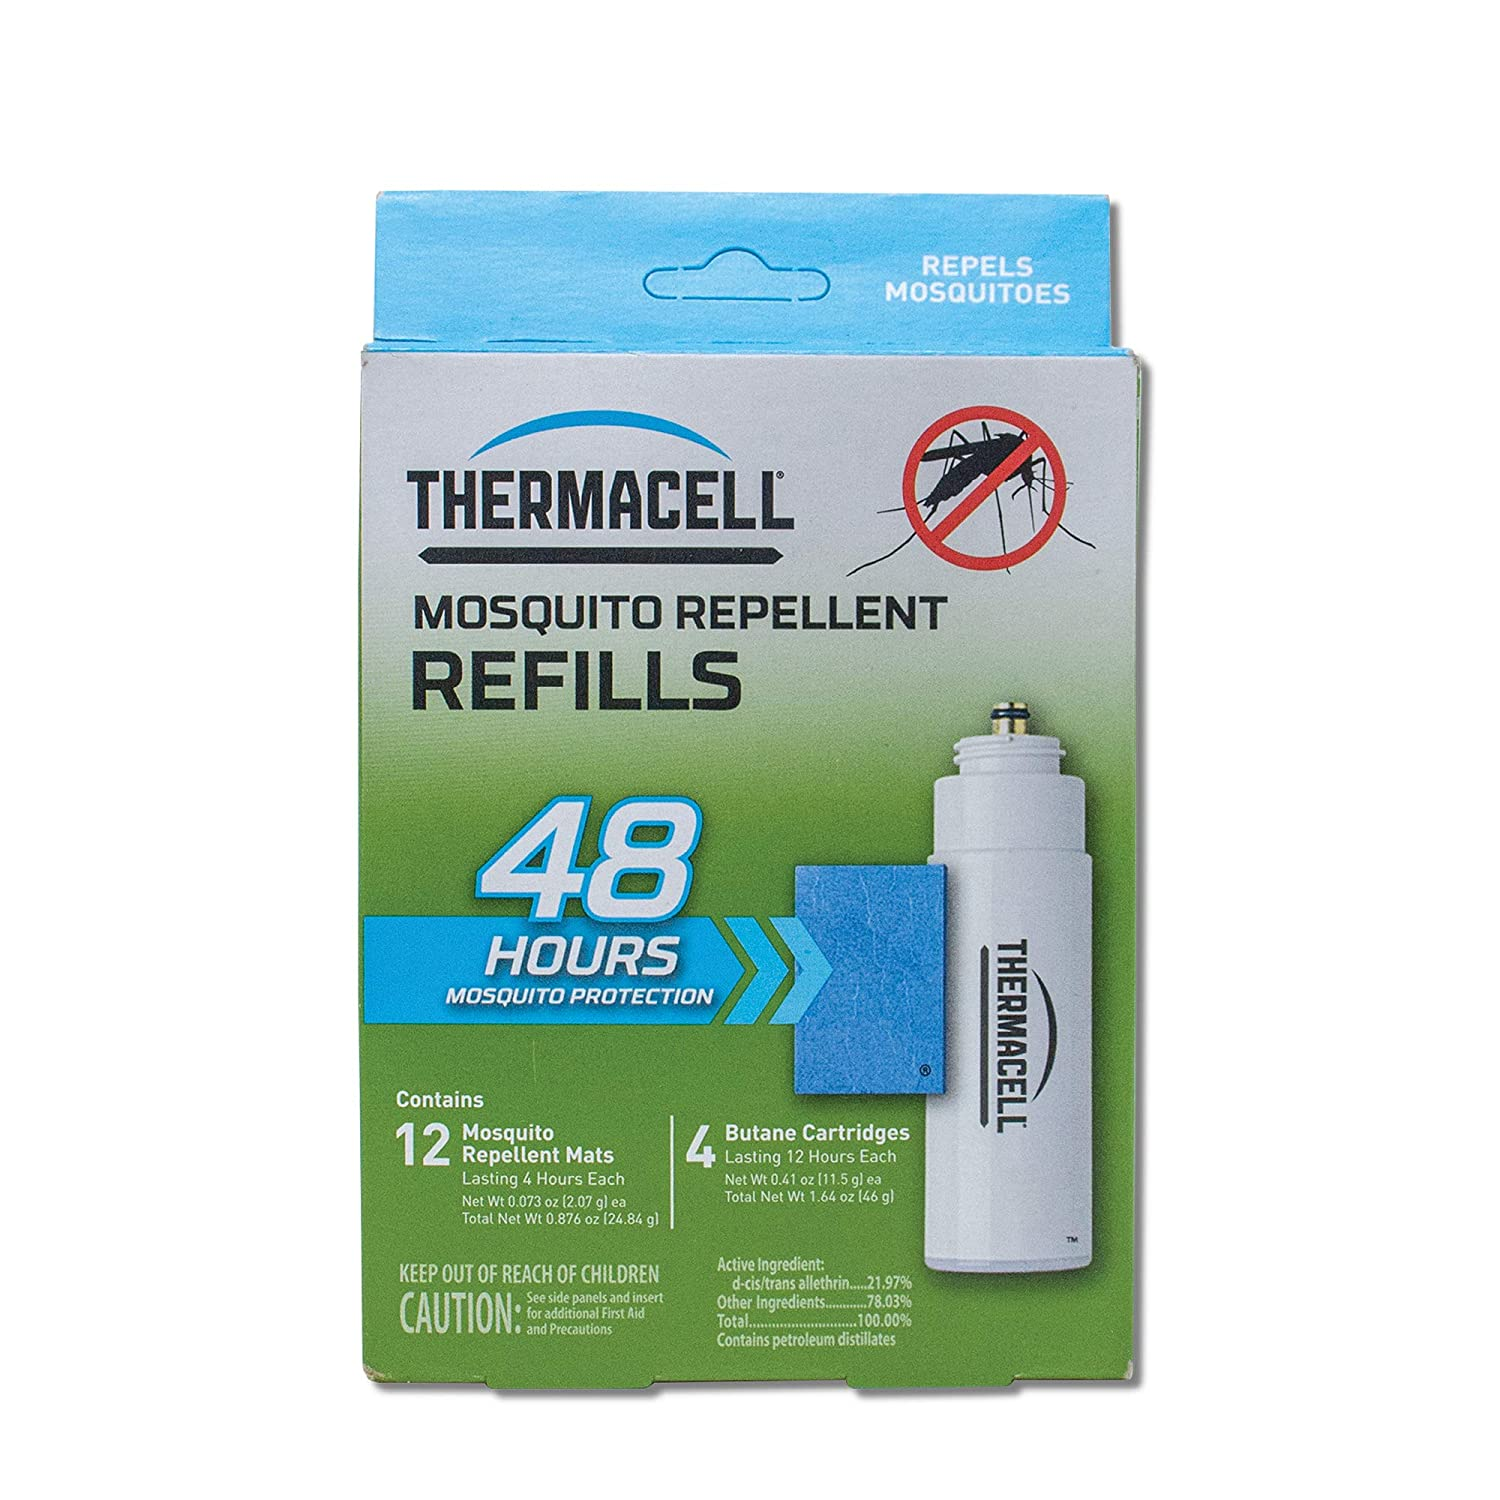 Thermacell Mosquito Repellent Refills, 48-Hour Pack; Contains 12 Repellent Mats, 4 Fuel Cartridges; Compatible with Any Fuel-Powered Thermacell Product; No Spray, Scent, Mess; 15 Ft Zone of Protection: Thermacell: Industrial & Scientific